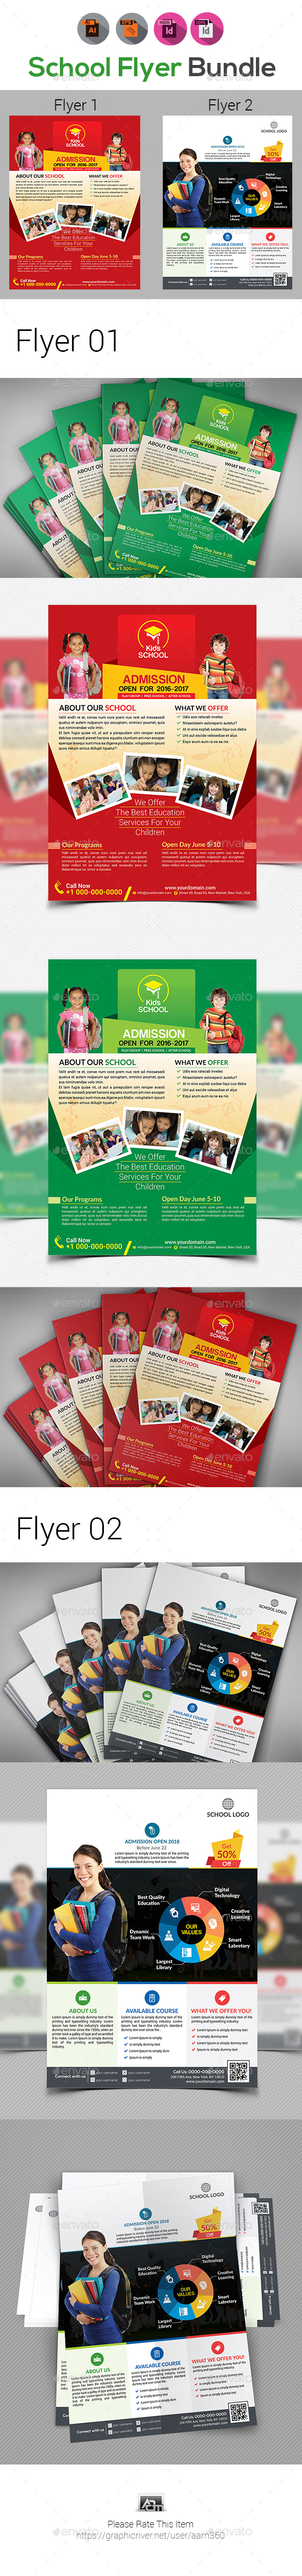 School Flyer Bundle V5 - Corporate Flyers